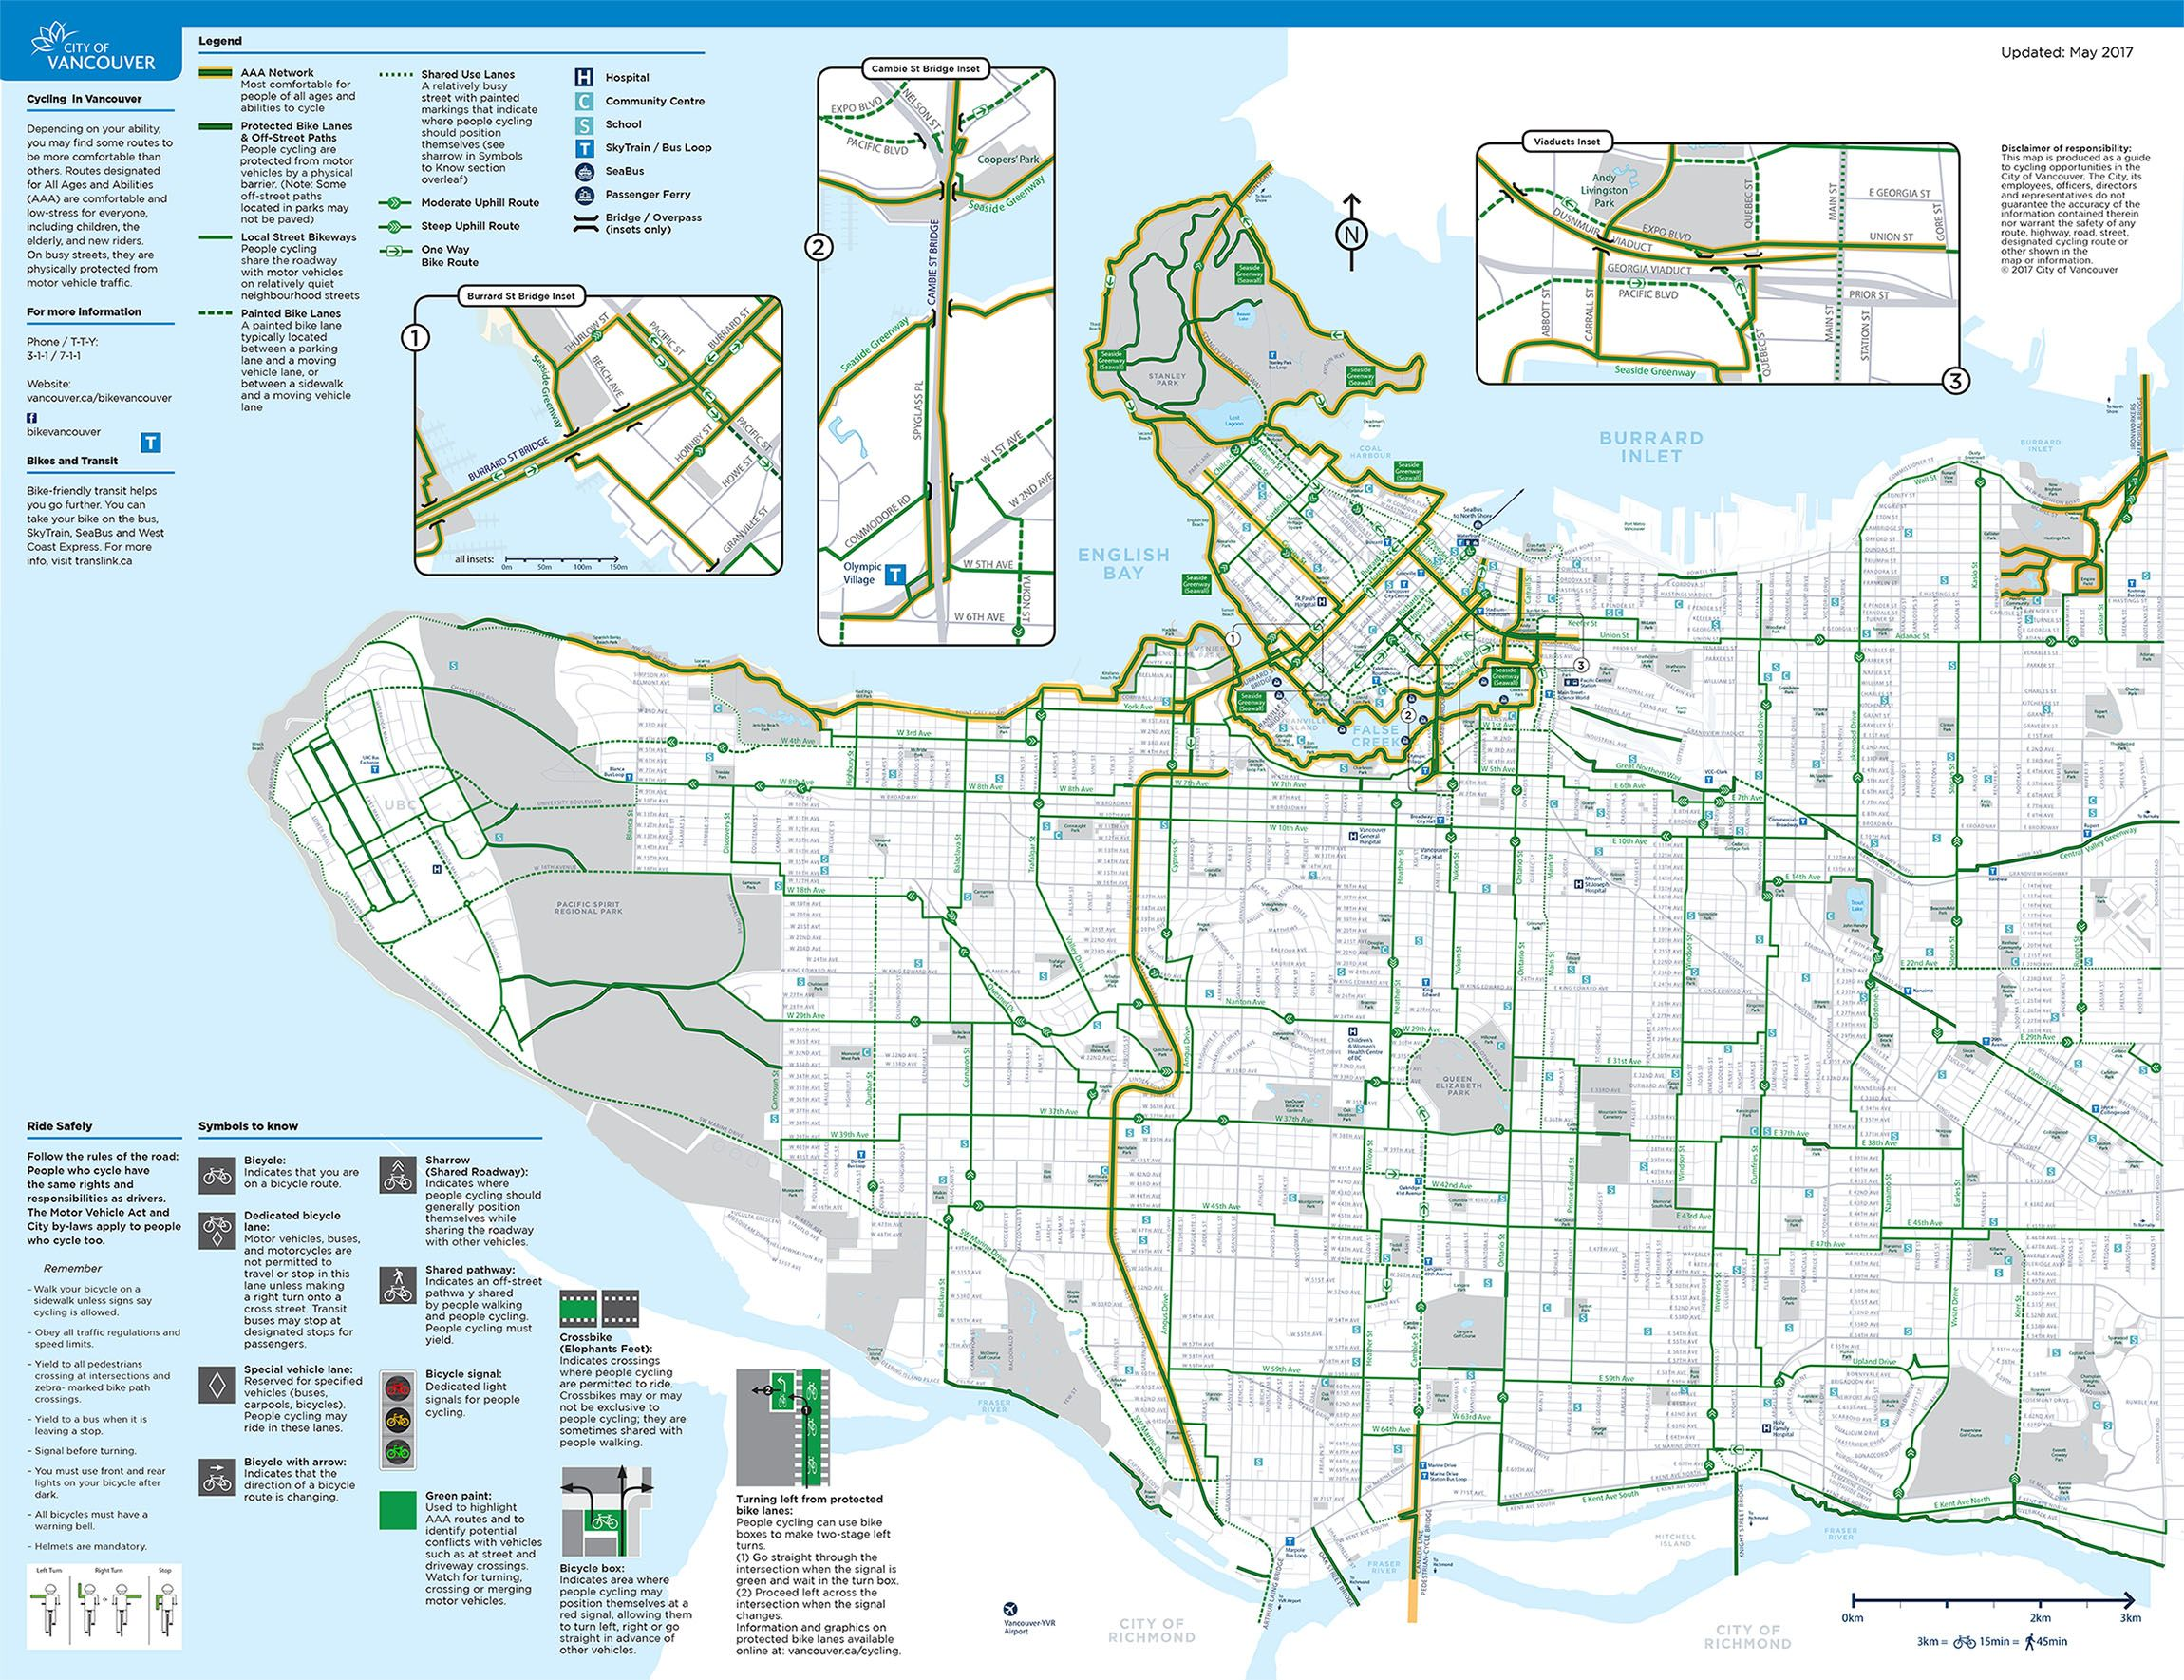 Map of Vancouver bike paths (City of Vancouver)